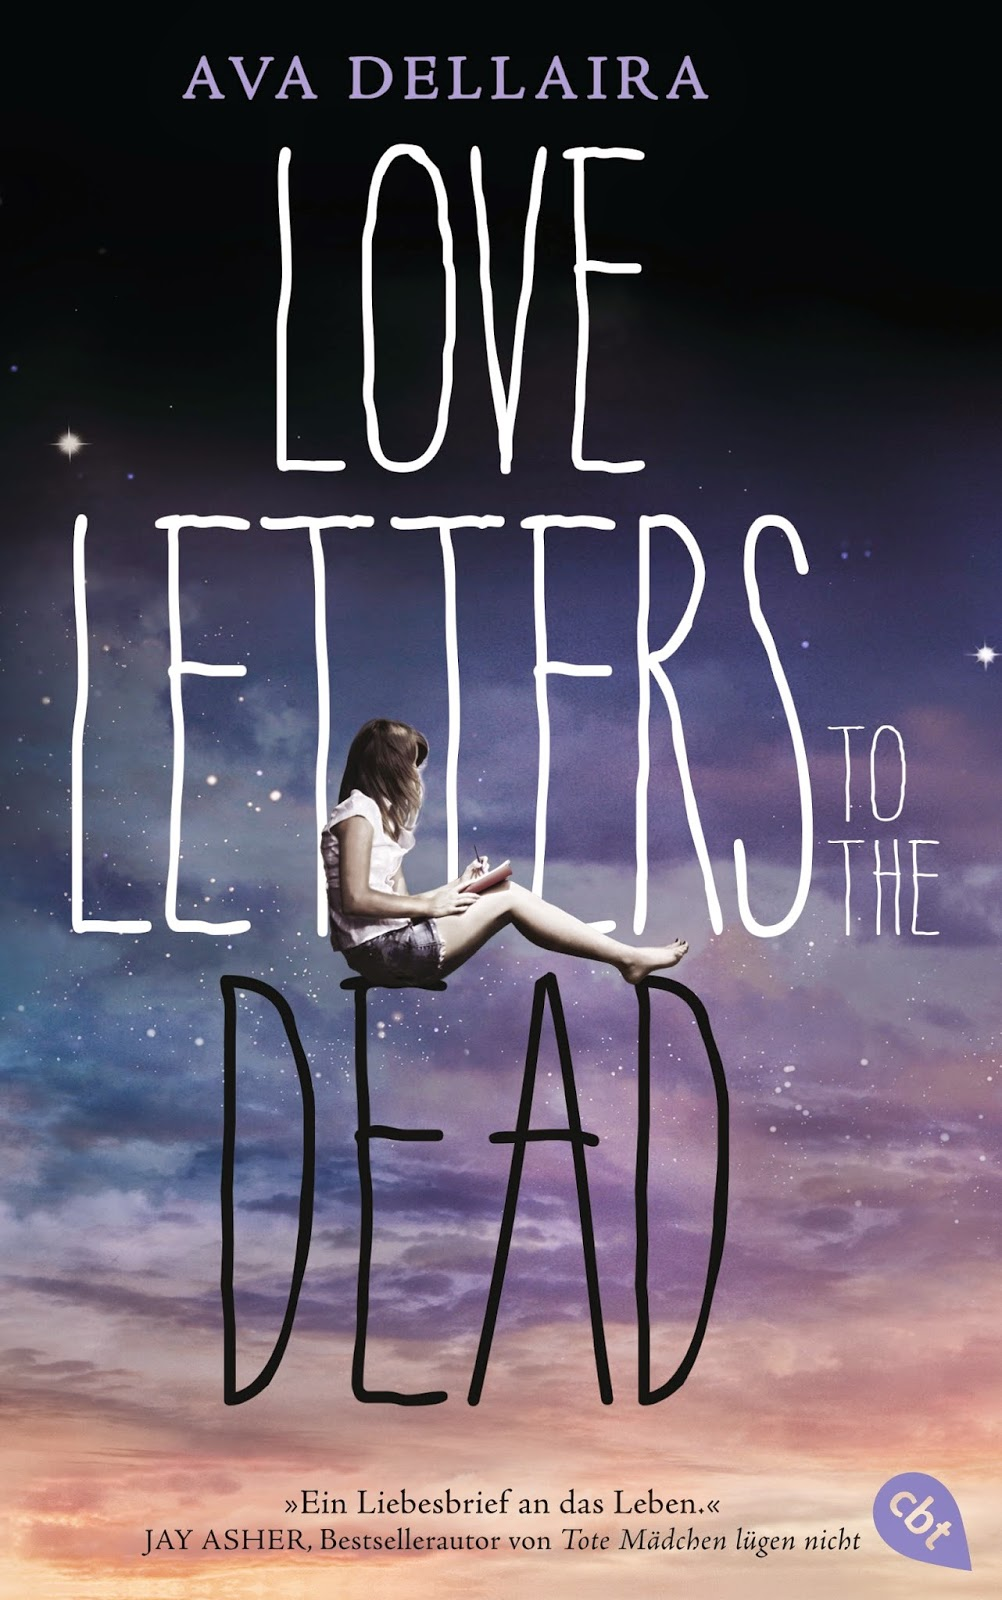 http://www.randomhouse.de/Buch/Love-Letters-to-the-Dead-deutsche-Ausgabe/Ava-Dellaira/e454940.rhd